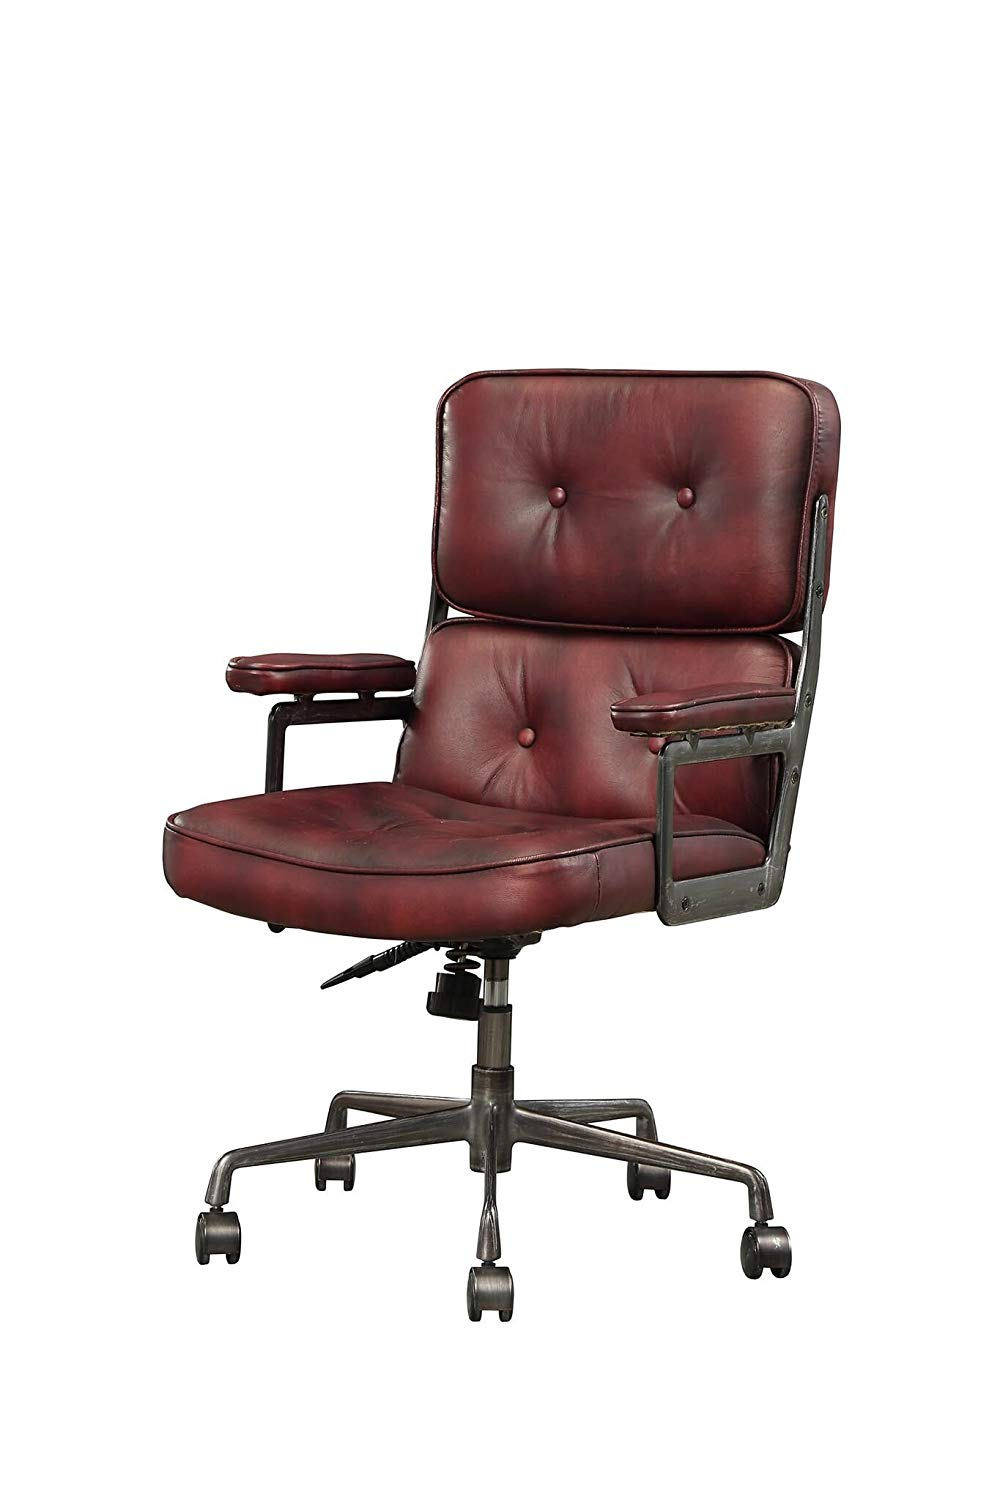 "Major-Q 9092027 37"" H Industrial Style Vintage Merlot Top Grain Leather Metal Frame Executive Arm Swivel Adjustable Height Office Chair"